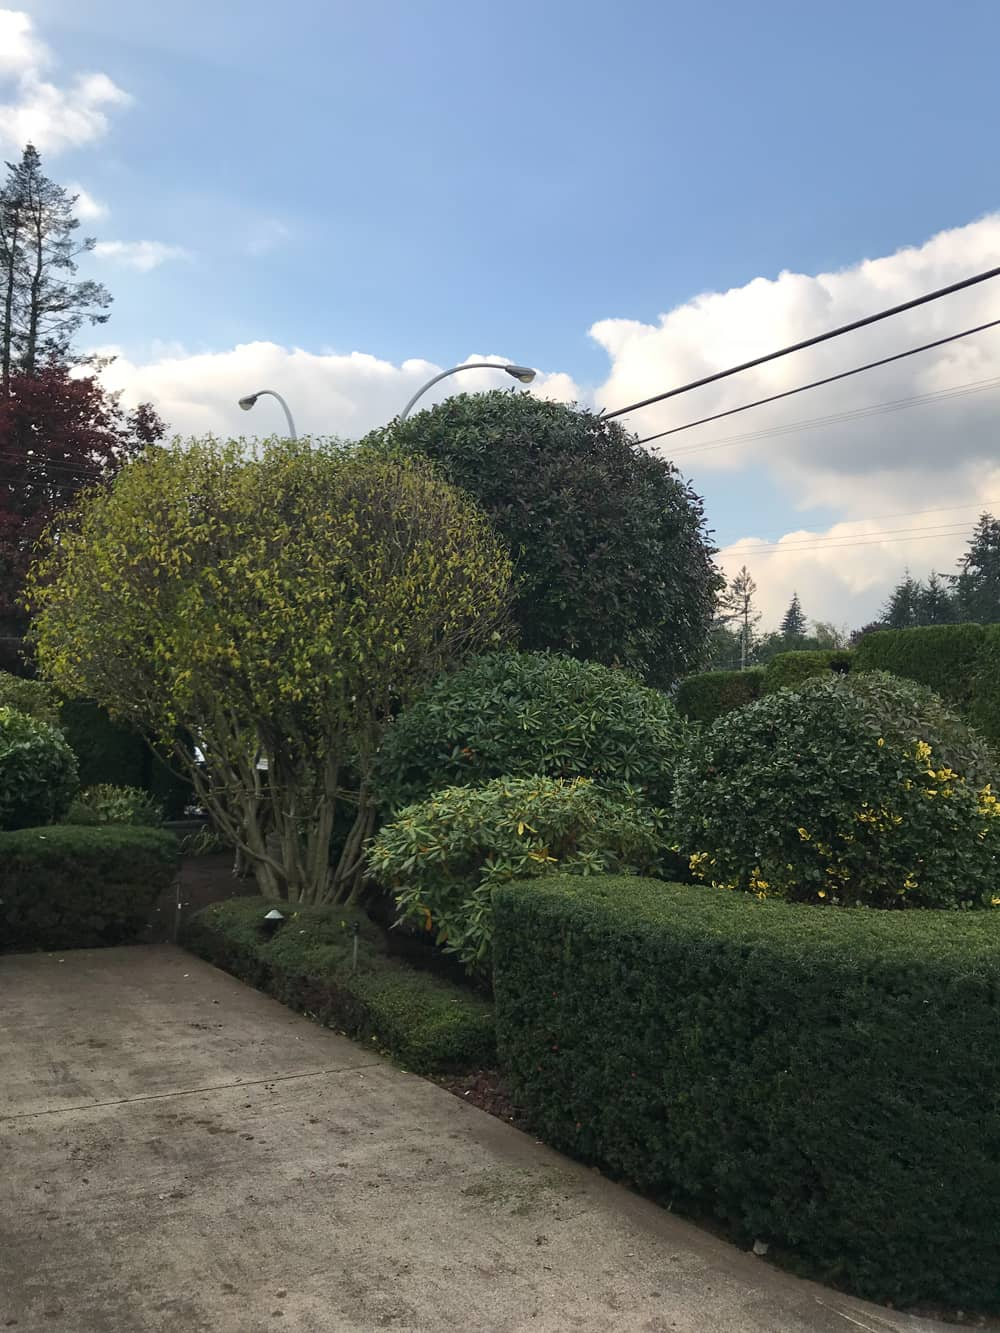 Trimming and Shaping Hedges